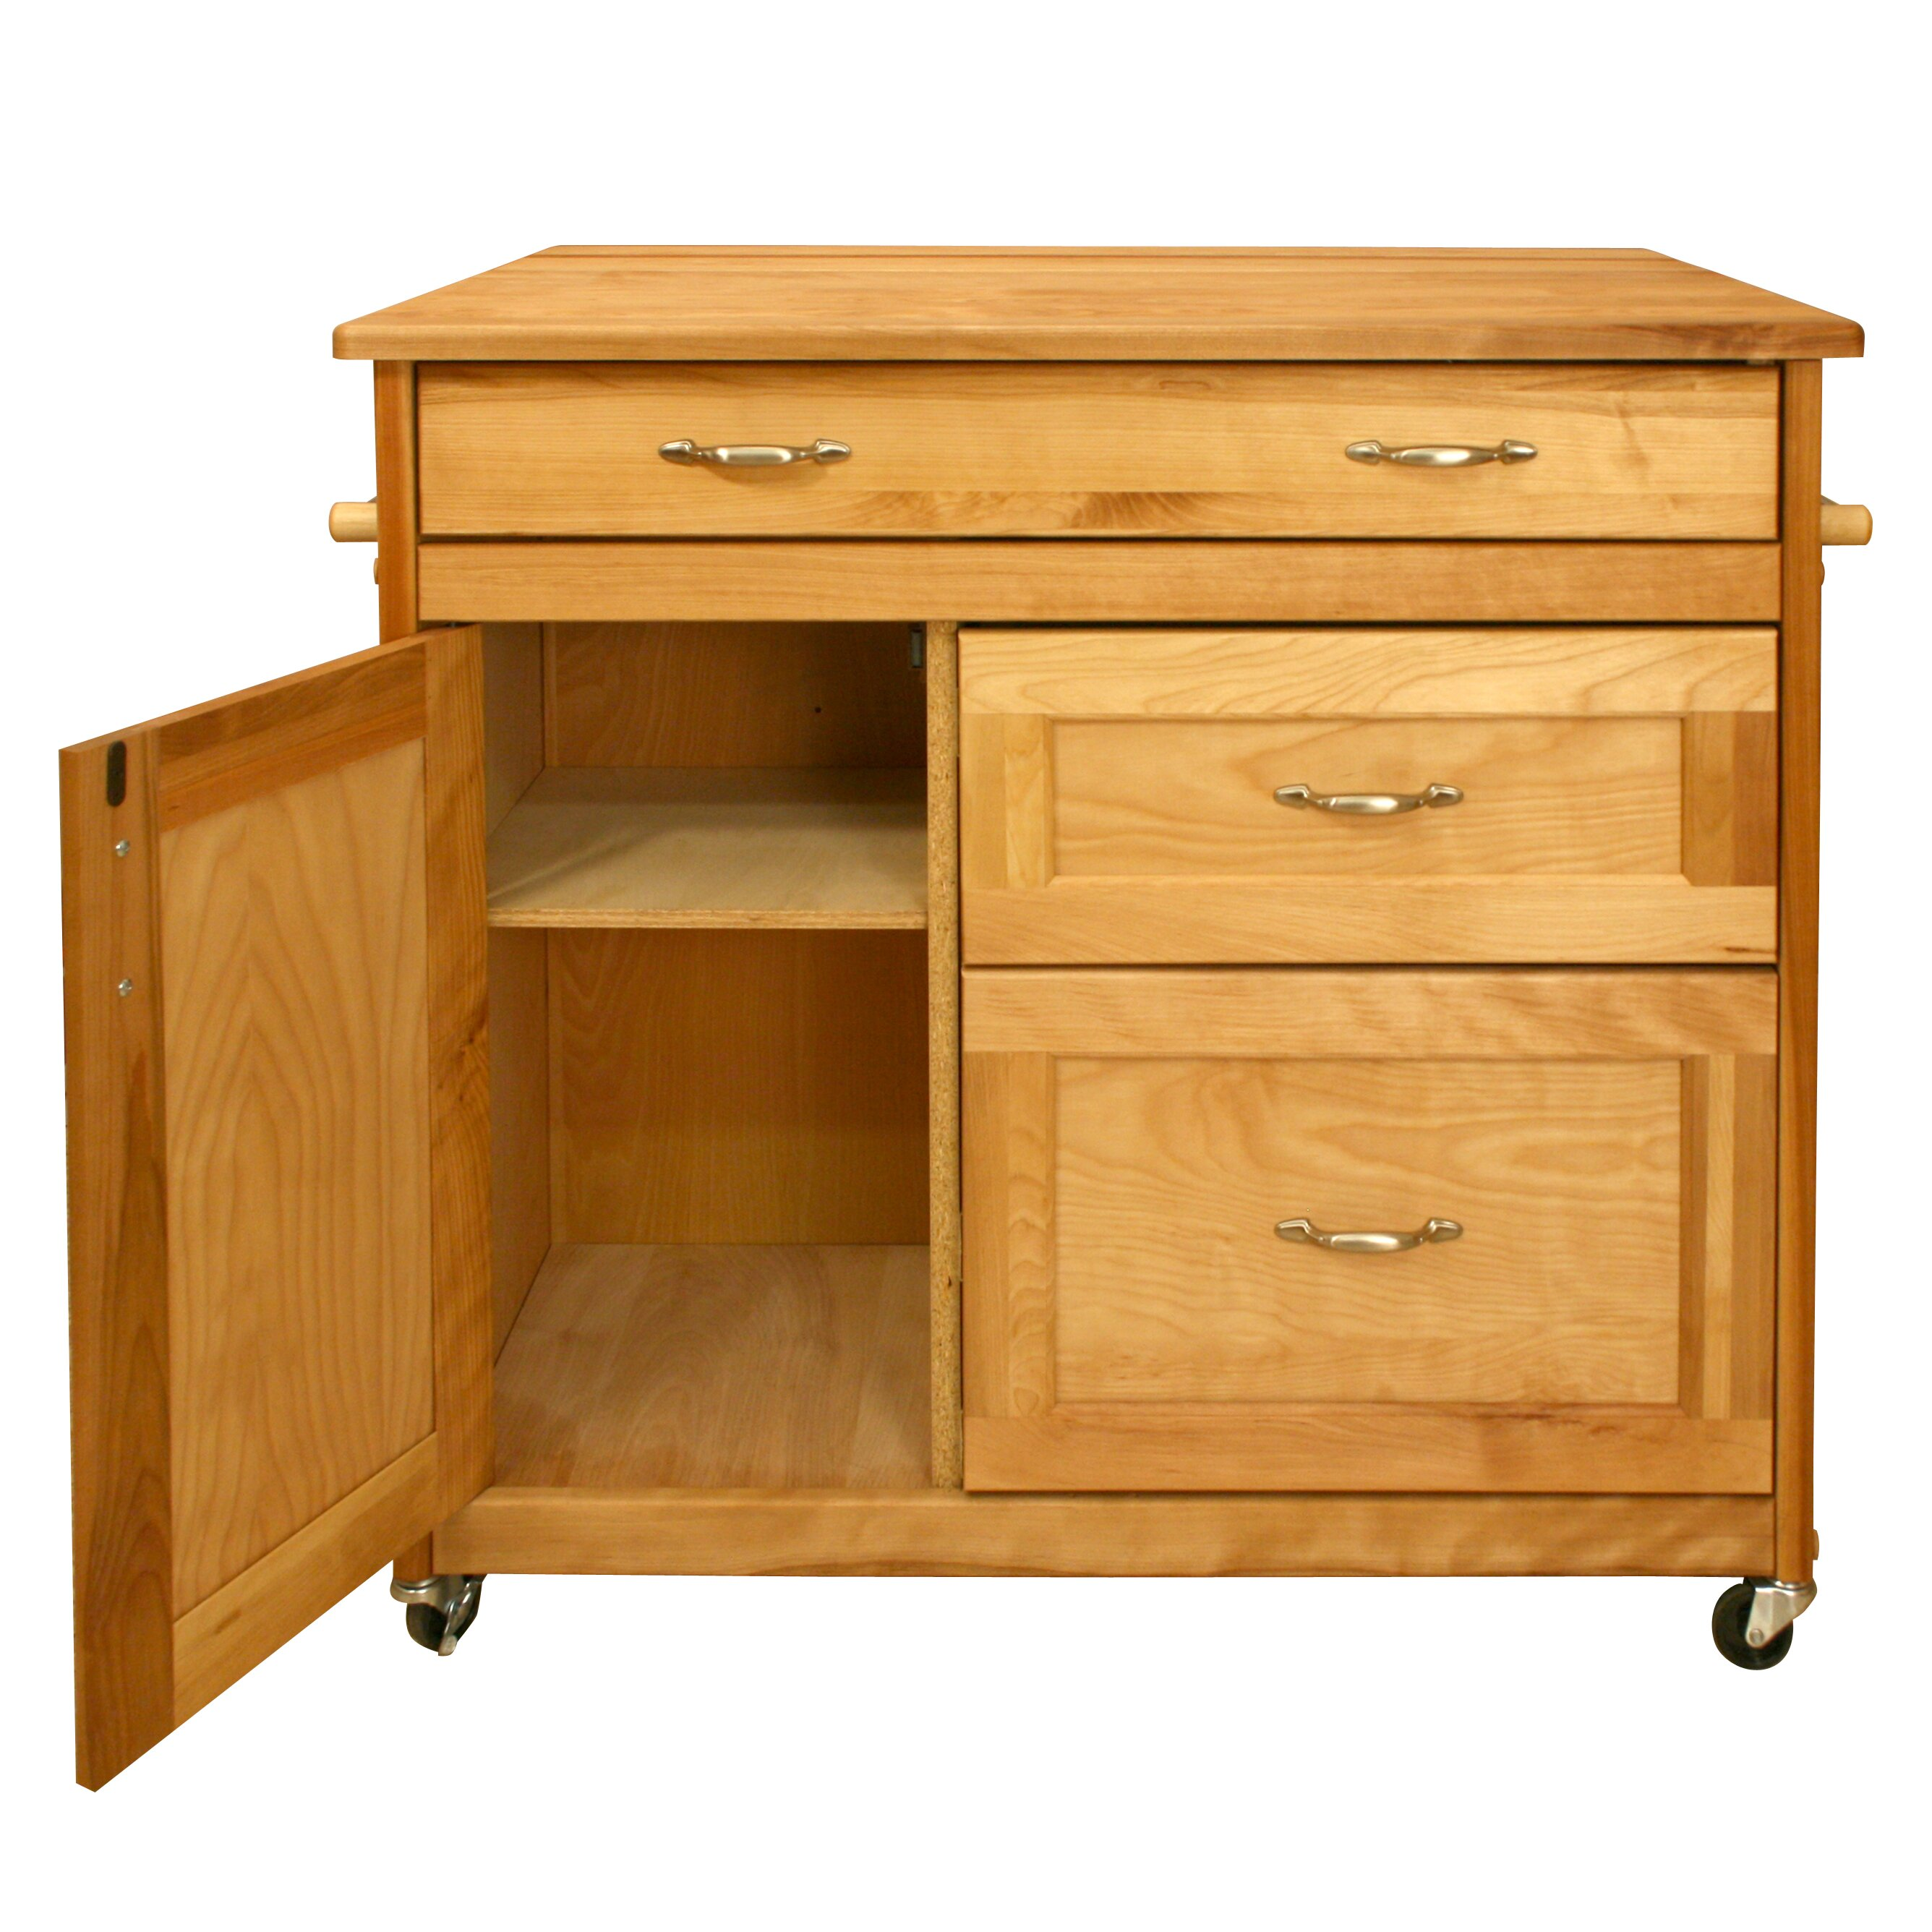 catskill craftsmen kitchen island amp reviews wayfair catskill craftsmen kitchen island with wood top amp reviews